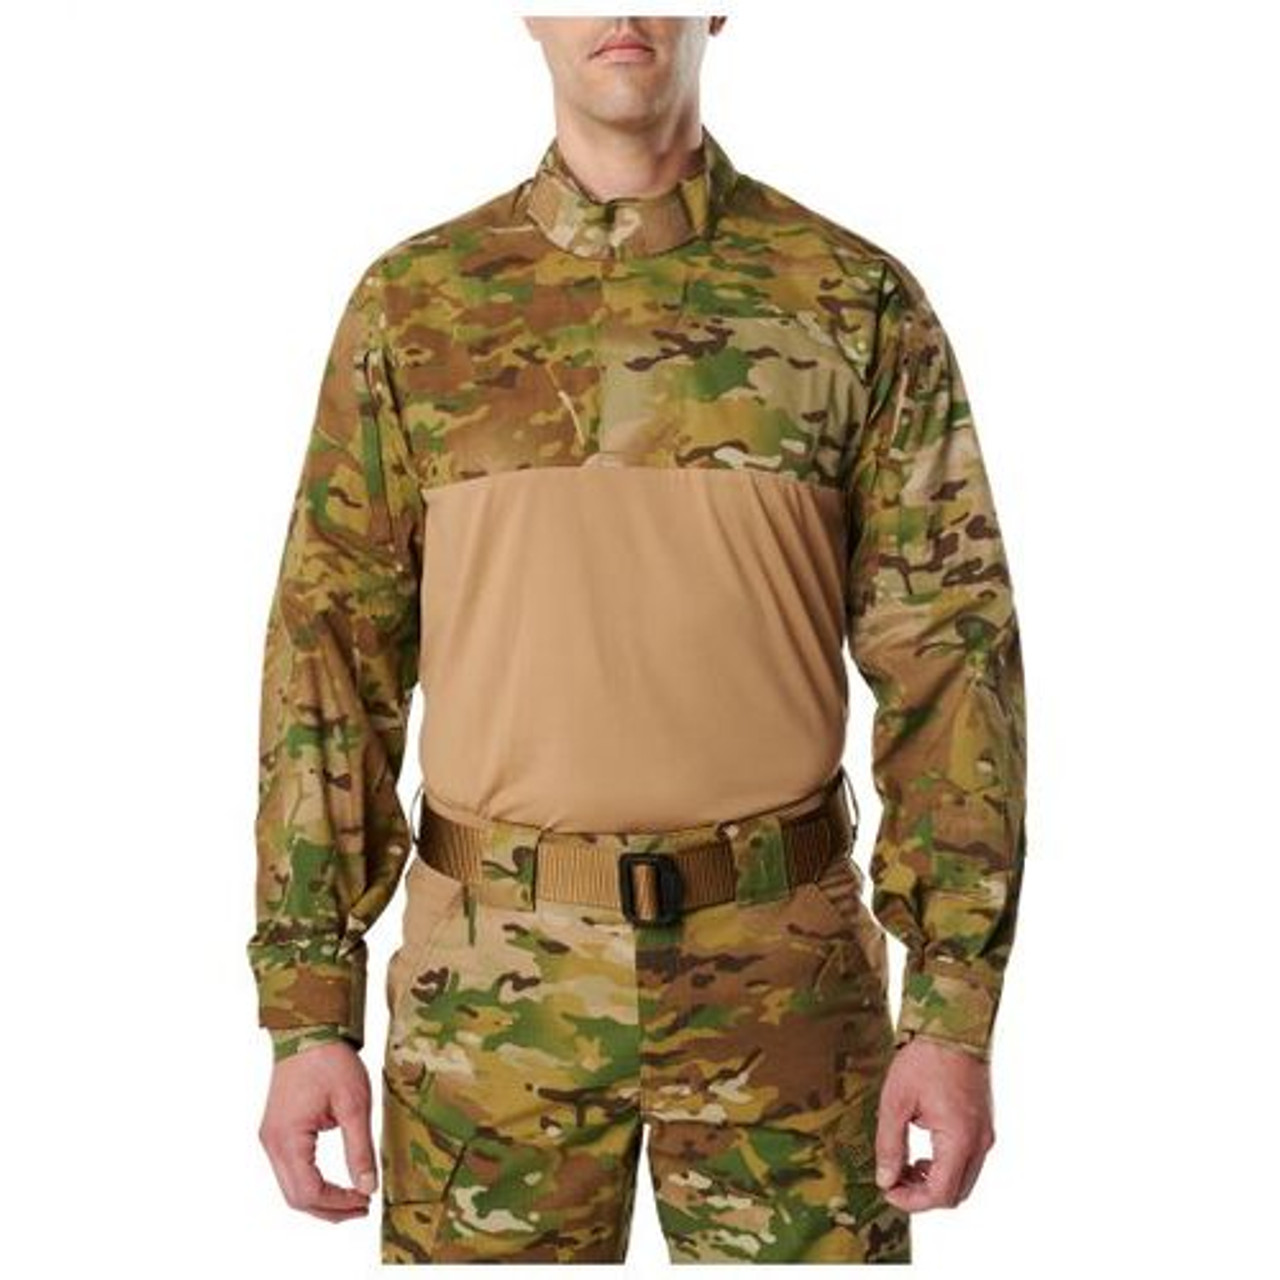 Texar Polo Shirt Military Style Elite Pro Tactical Mens Coyote